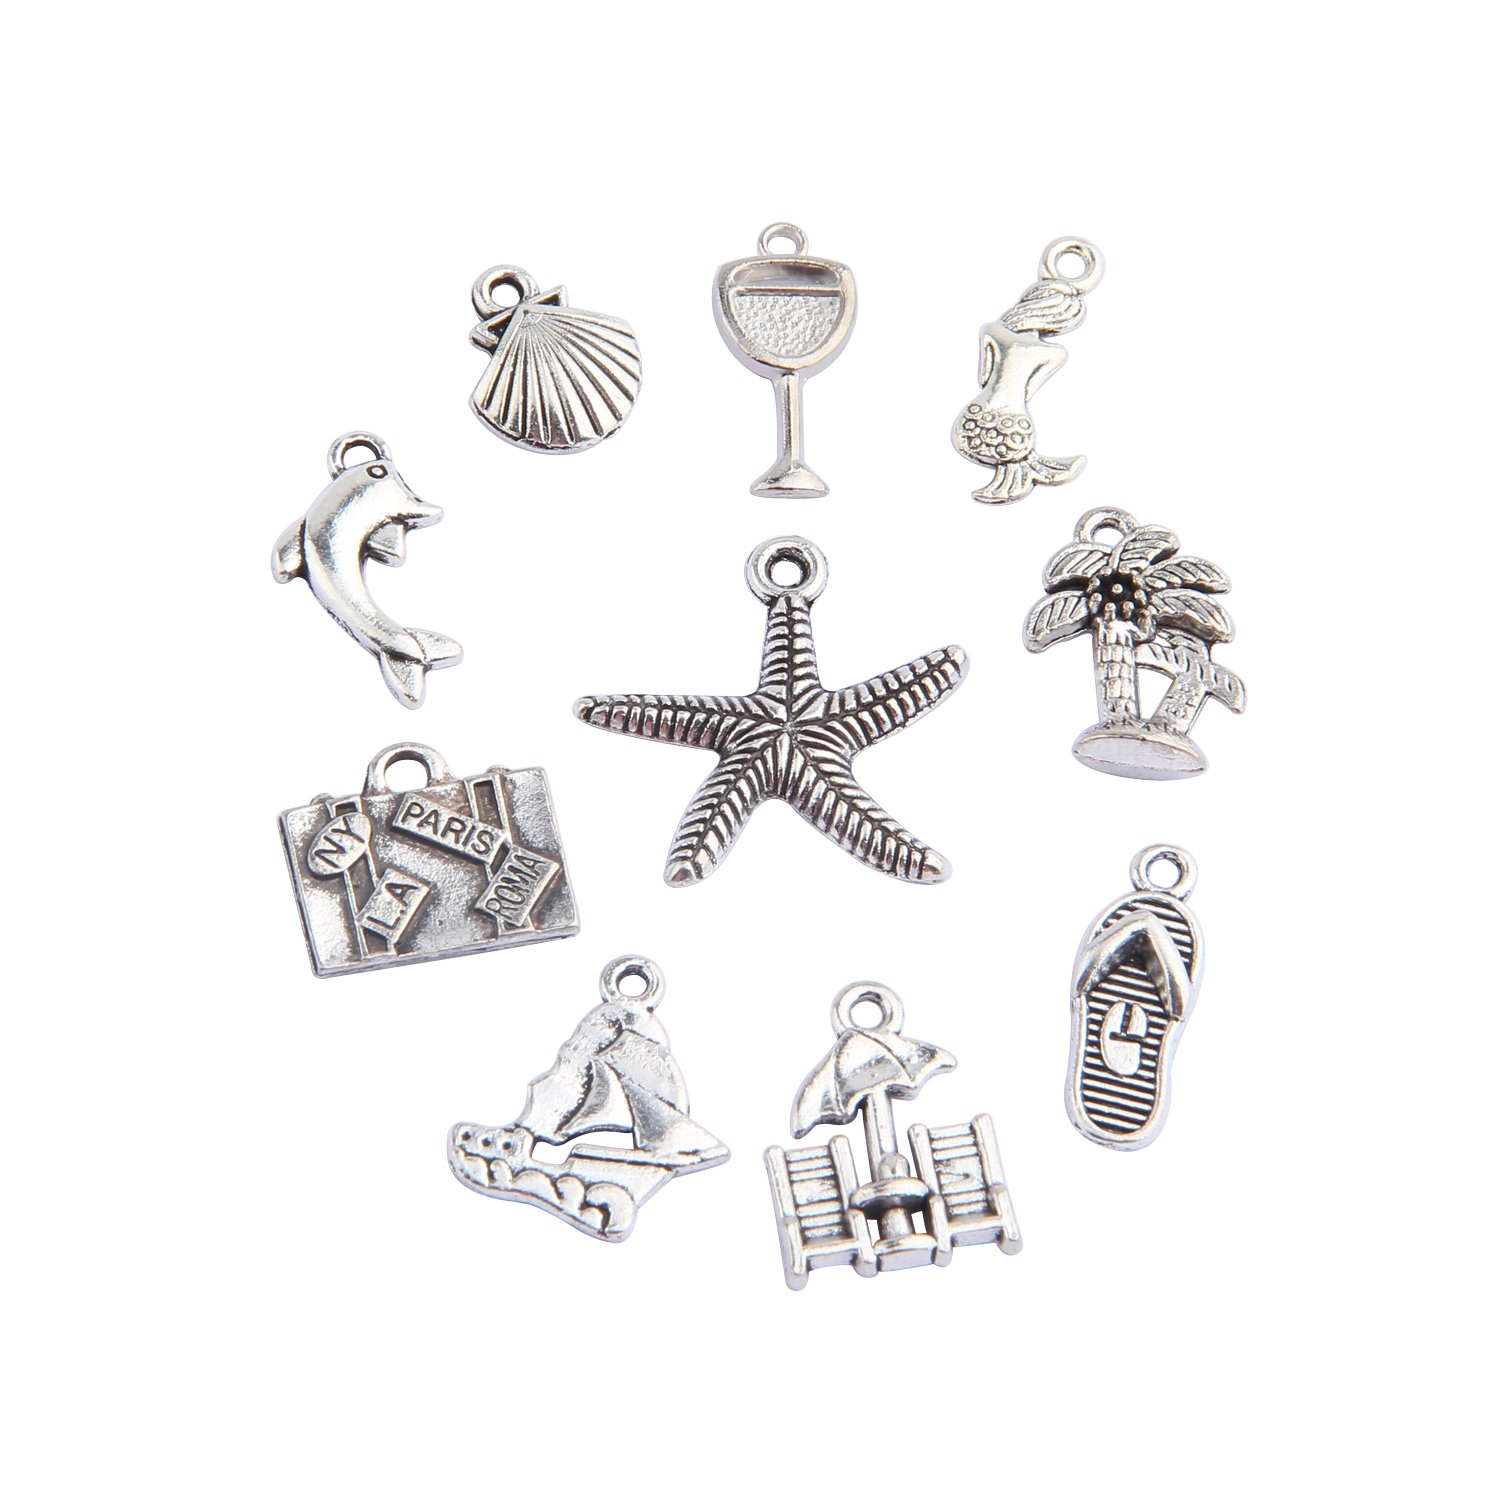 BNQL 20pcs Travel Ocean Animals Assorted Charms DIY Jewelry Making (Ocean)